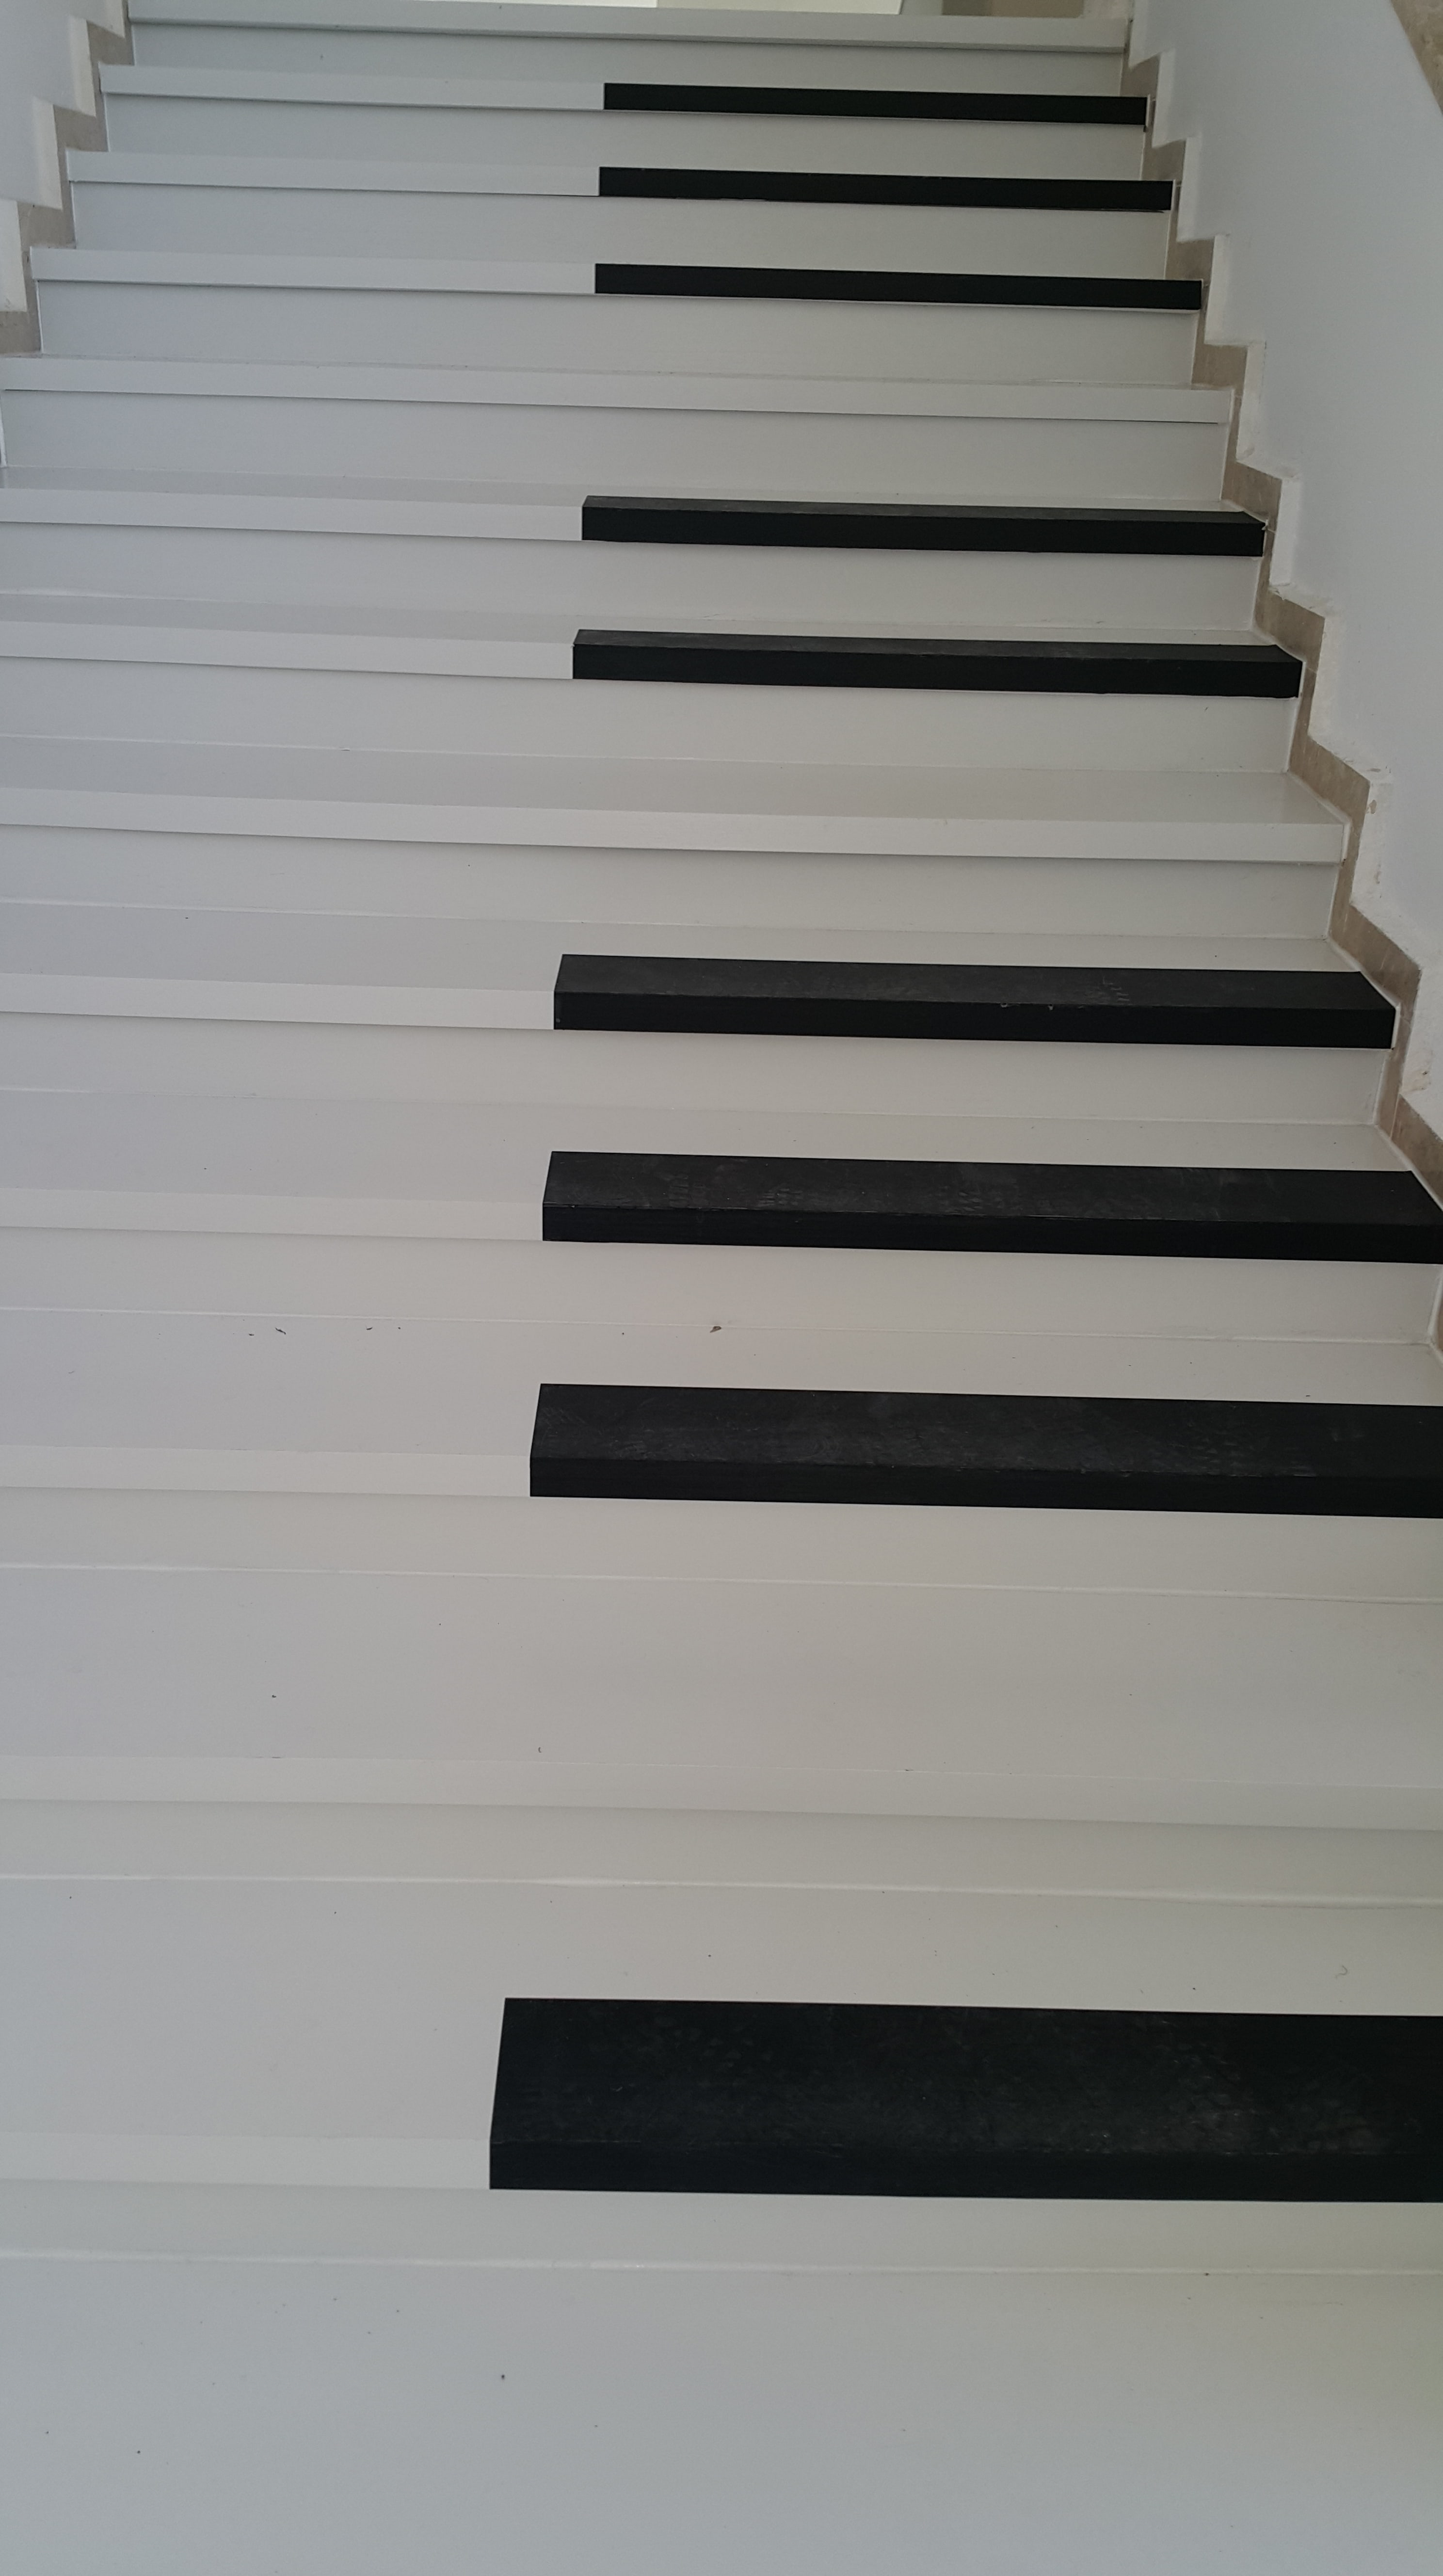 Piano staircase in Ankara University